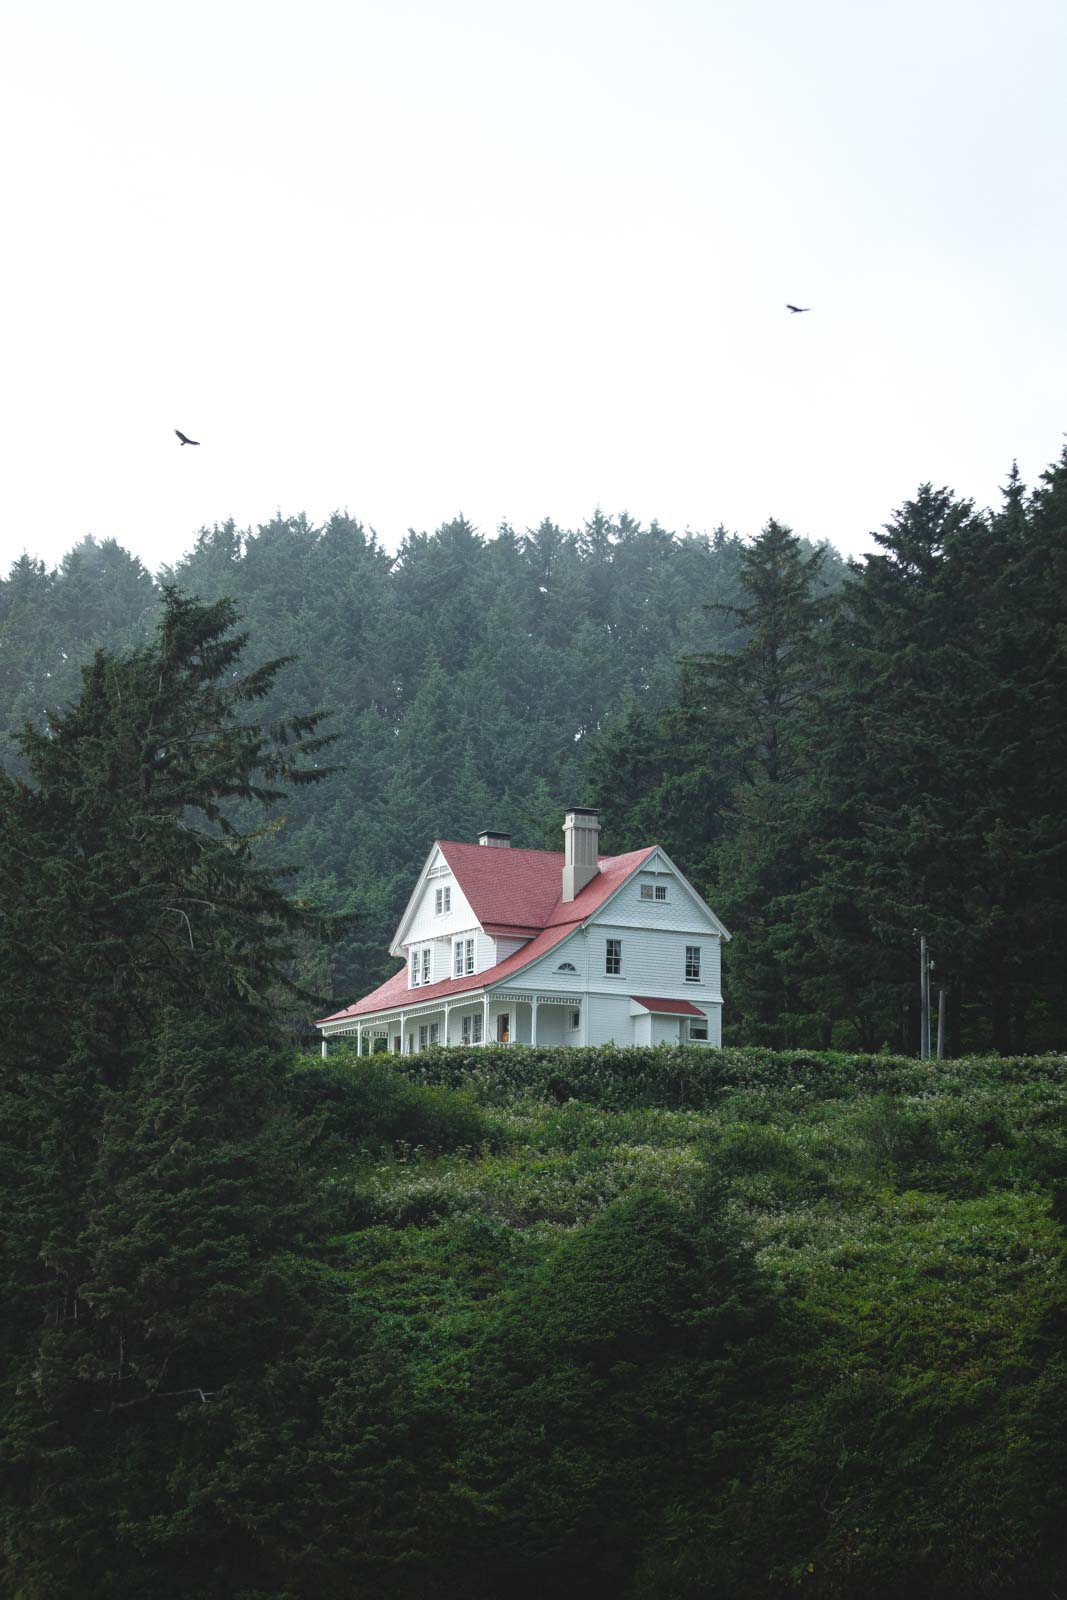 View of Heceta Lighthouse Keeper's House surrounded by trees